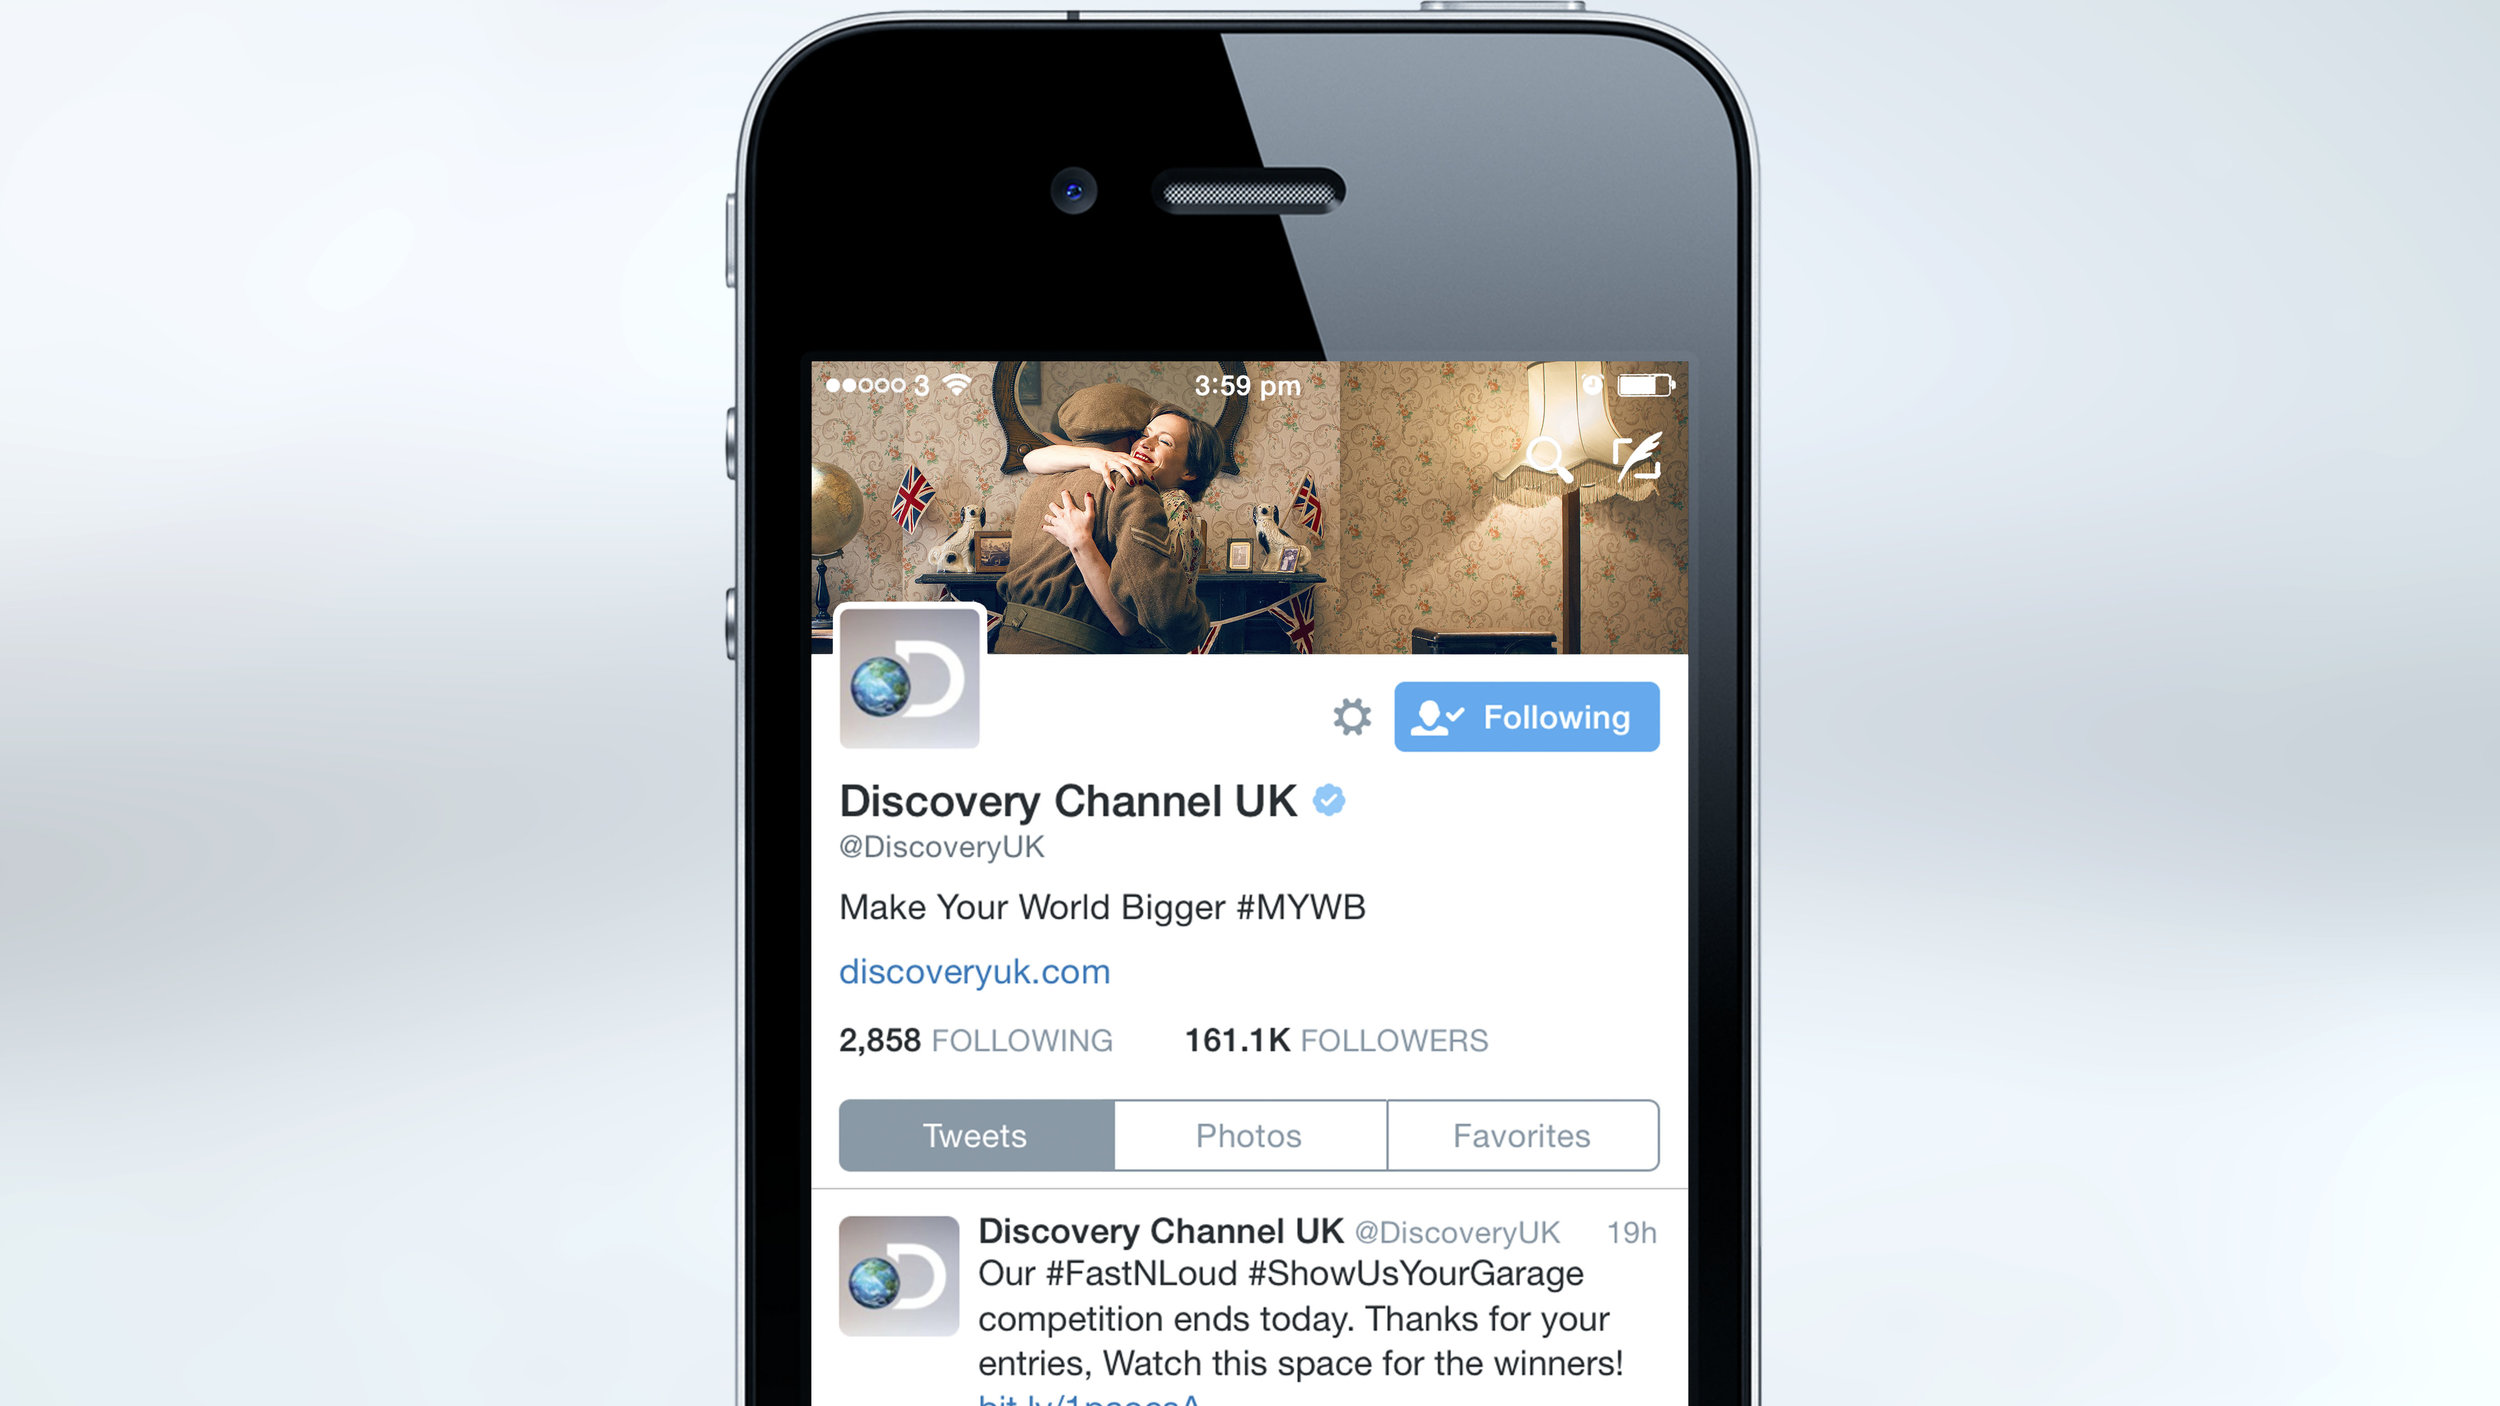 ve-day-discovery-twitter-cover-mock-01-mobile1.jpg